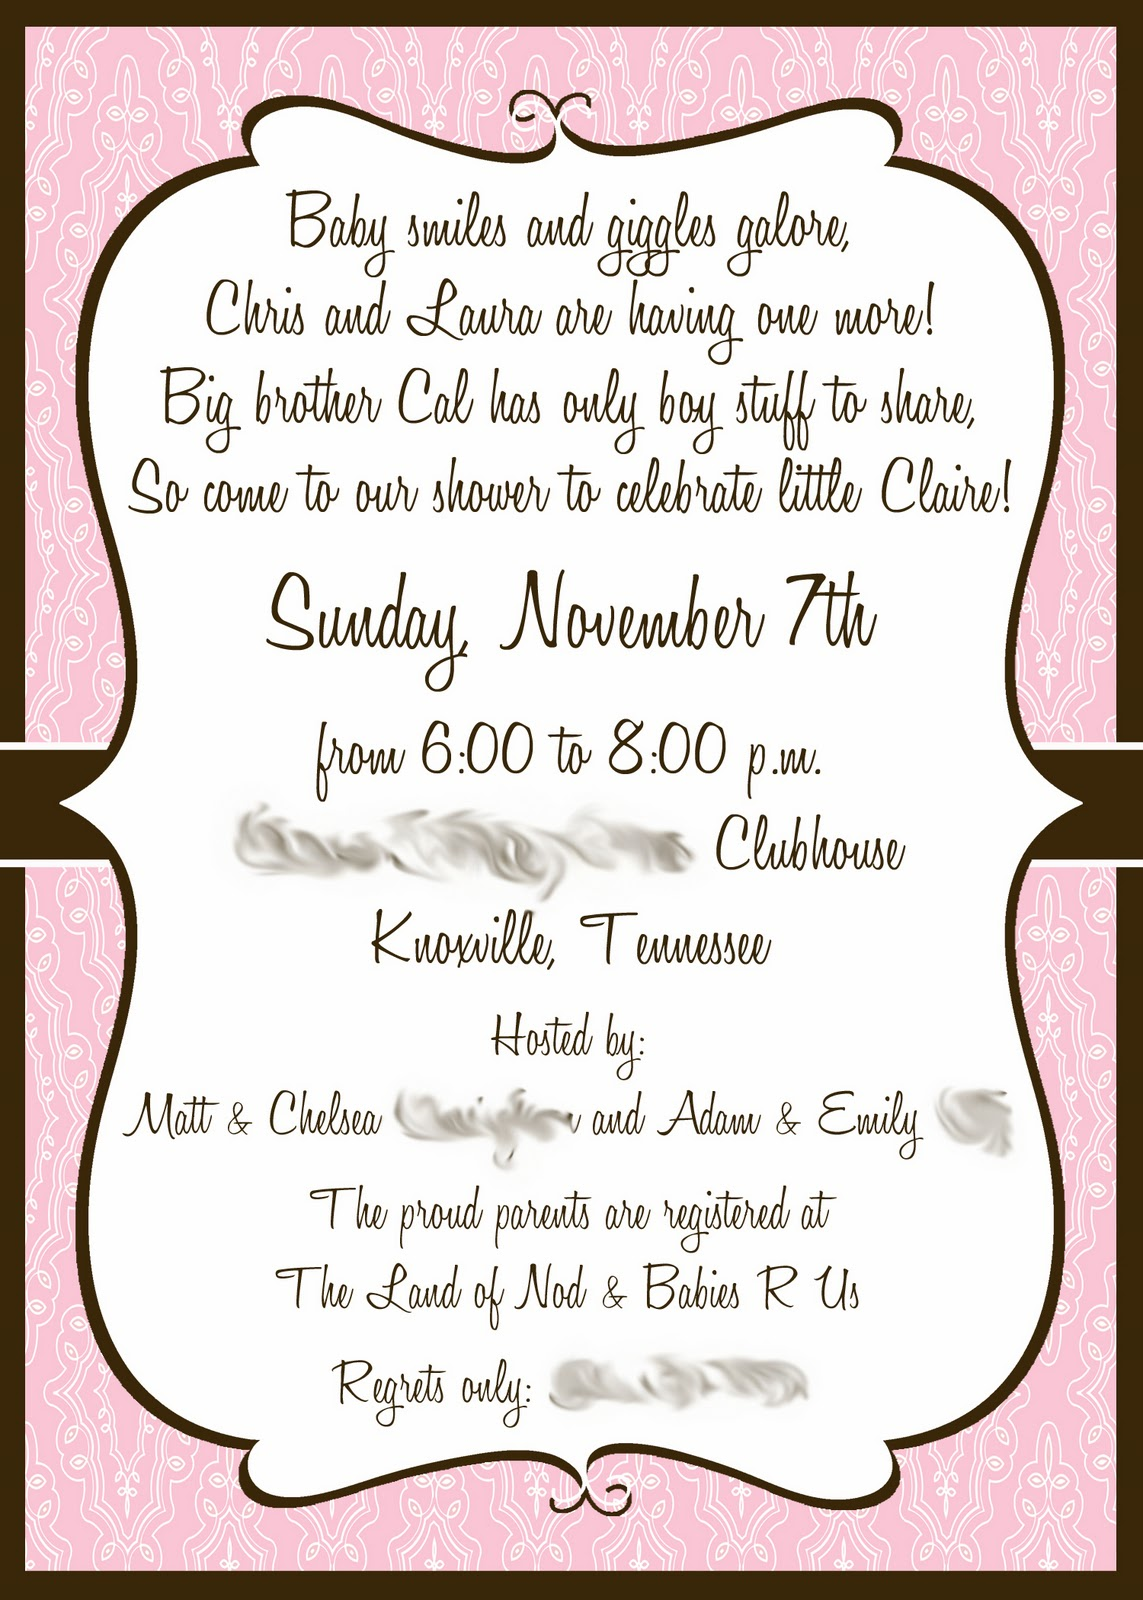 Invitations For Coed Baby Shower with great invitations ideas